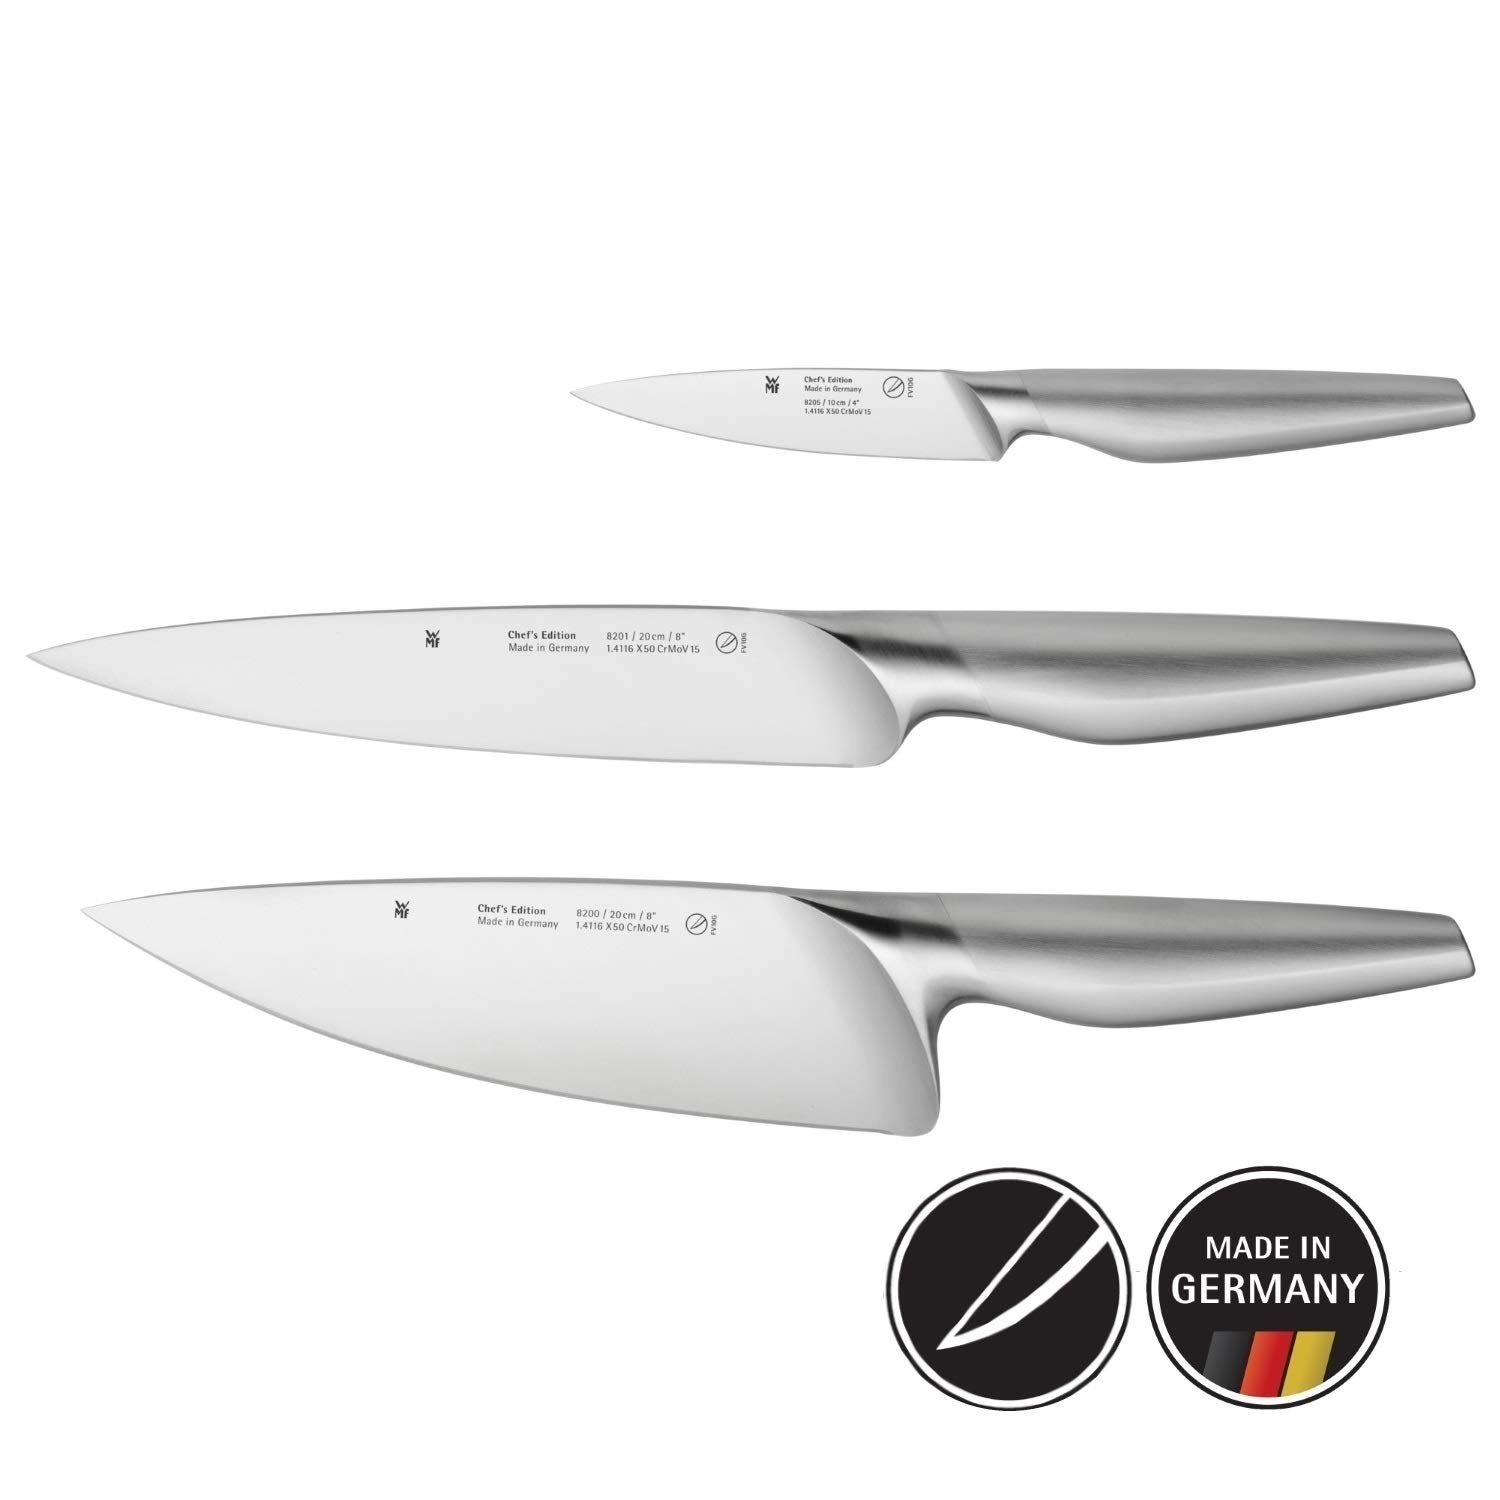 Fantastic Wmf Set Of Kitchen Knives Chef S Edition 3 Pieces Made In Germany Interior Design Ideas Truasarkarijobsexamcom